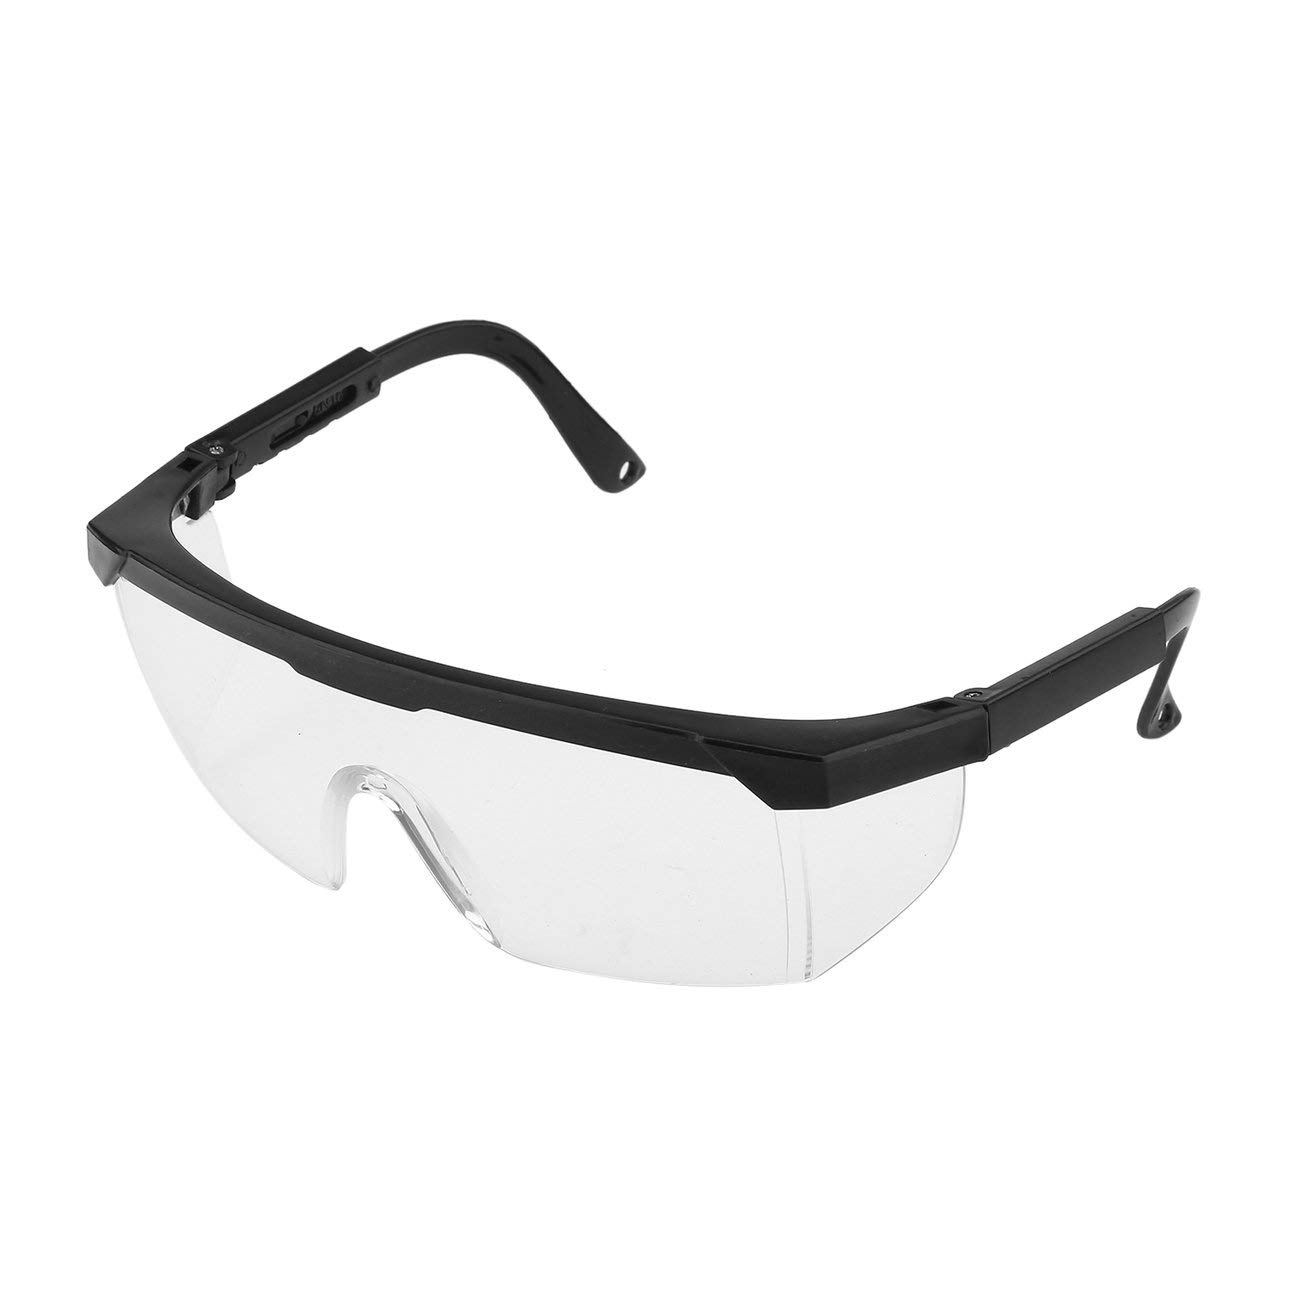 Liobaba Work Safety Eye Protecting Glasses Anti-Splash Wind Dust Proof Glasses Eyewear Goggles